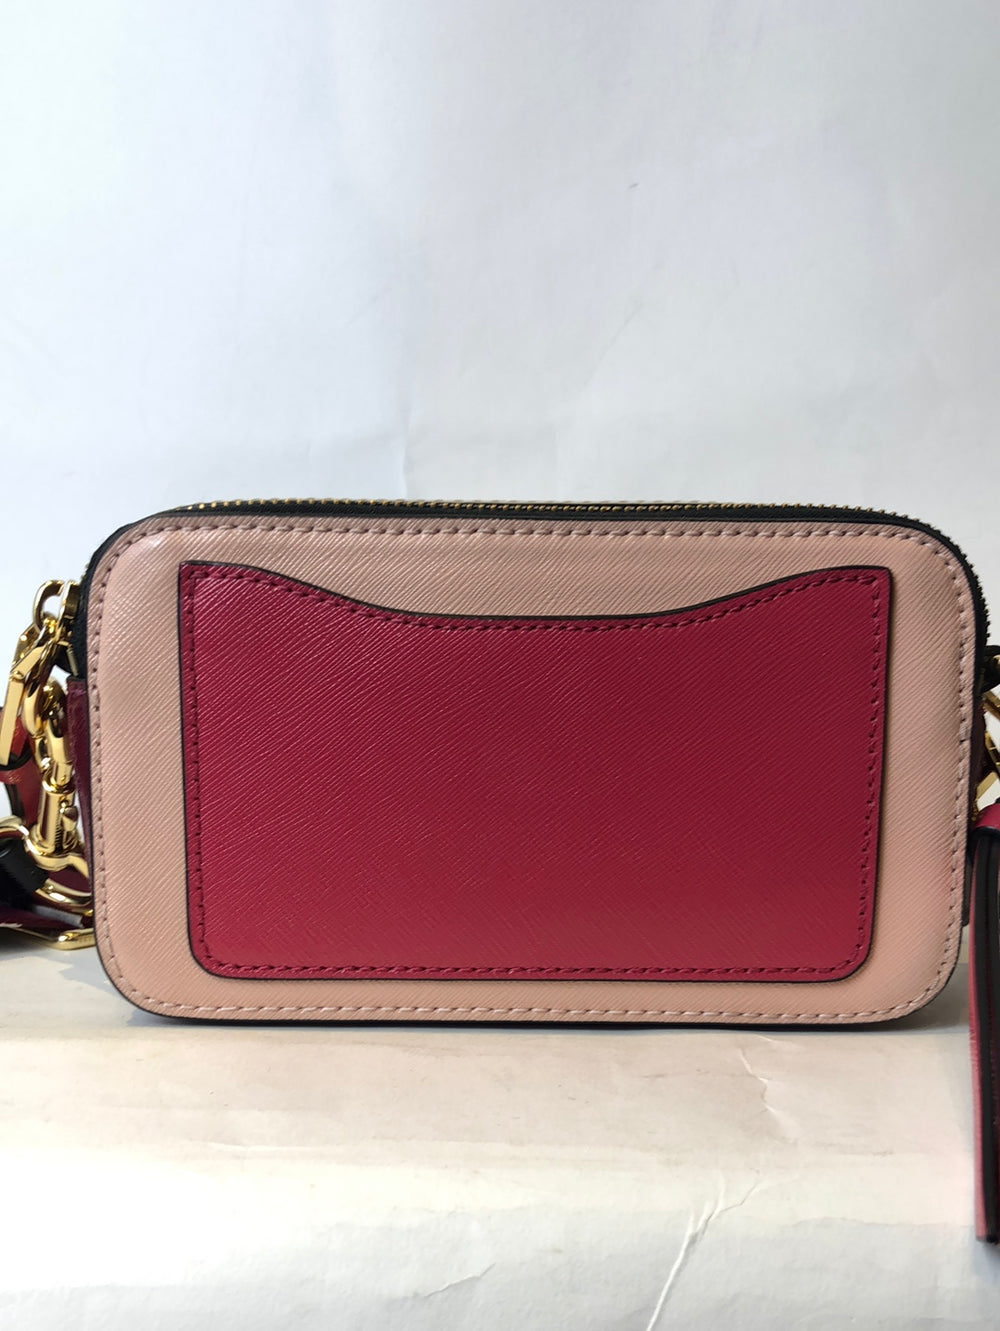 Marc Jacobs Peach & Wine Red Leather 'Snapshot' Crossbody - As Seen on Instagram  13/1/21